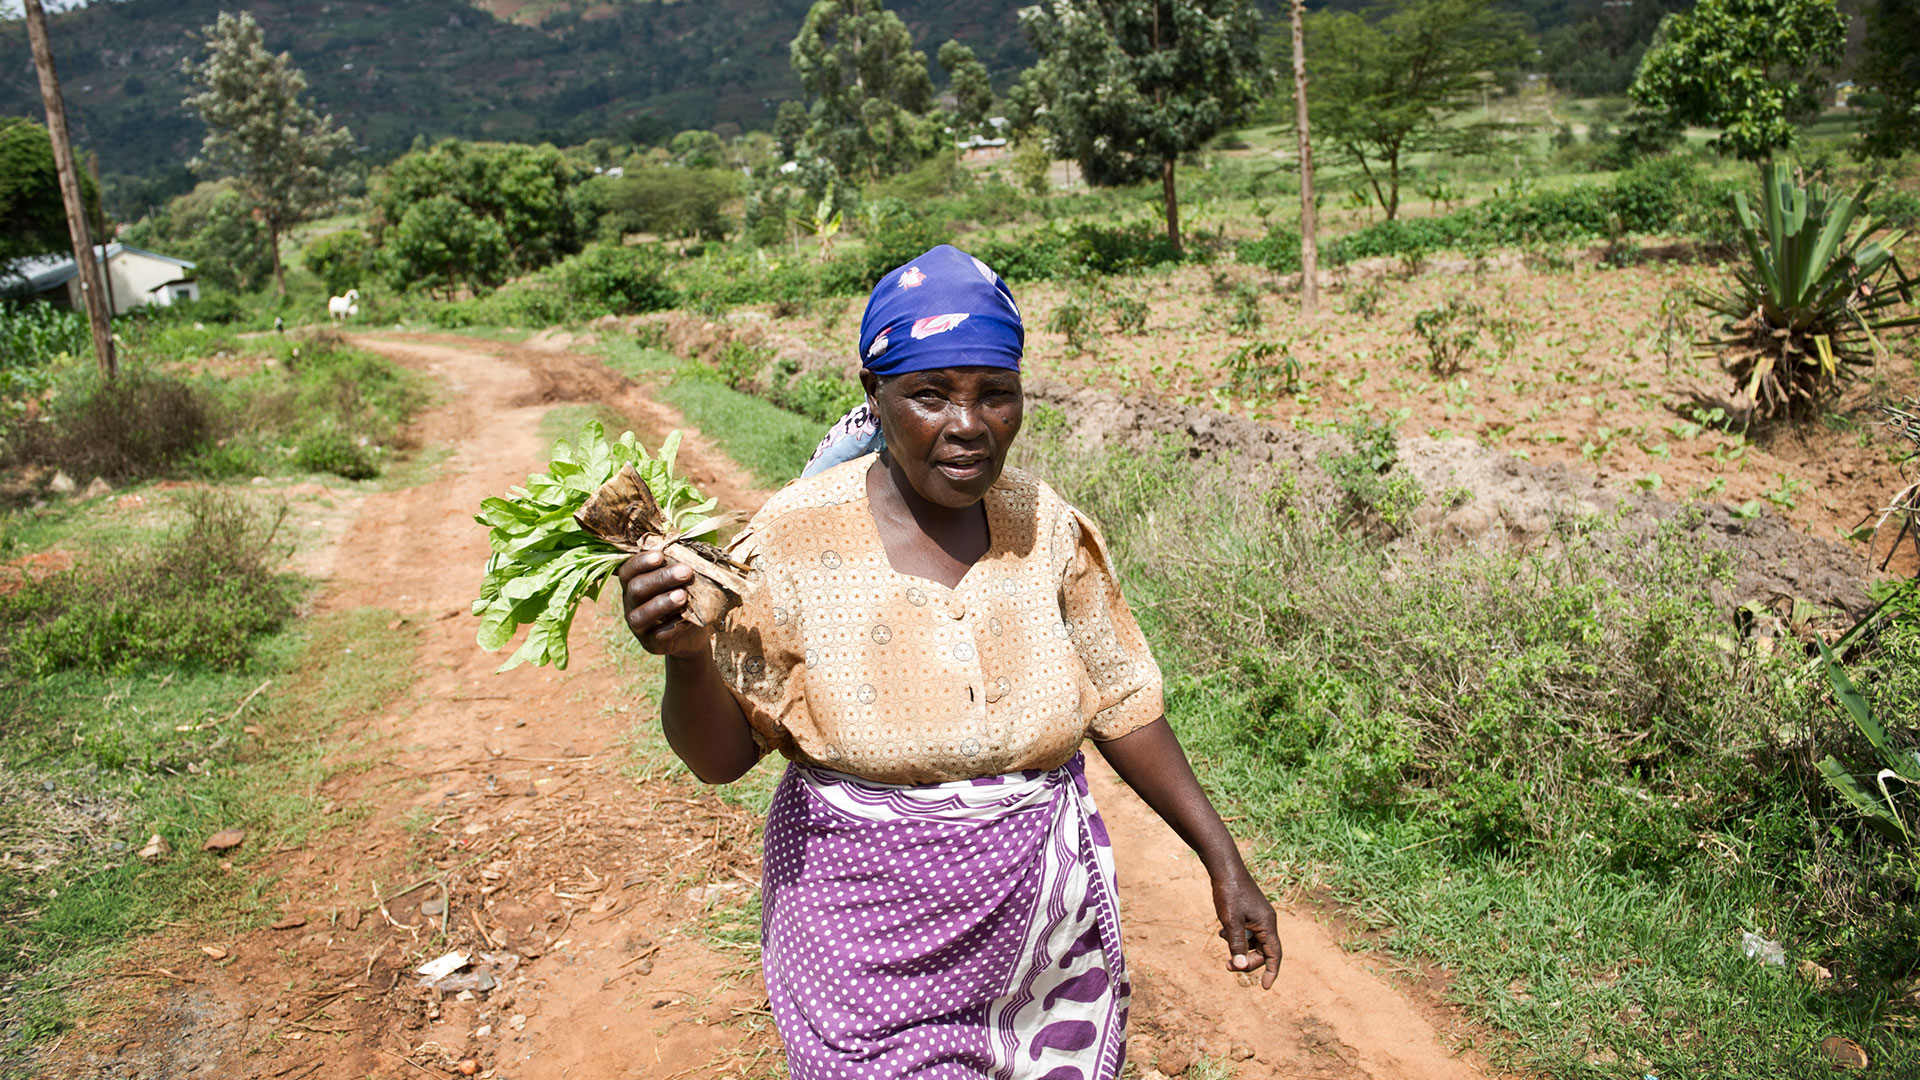 A female African farmer holding a crop sample